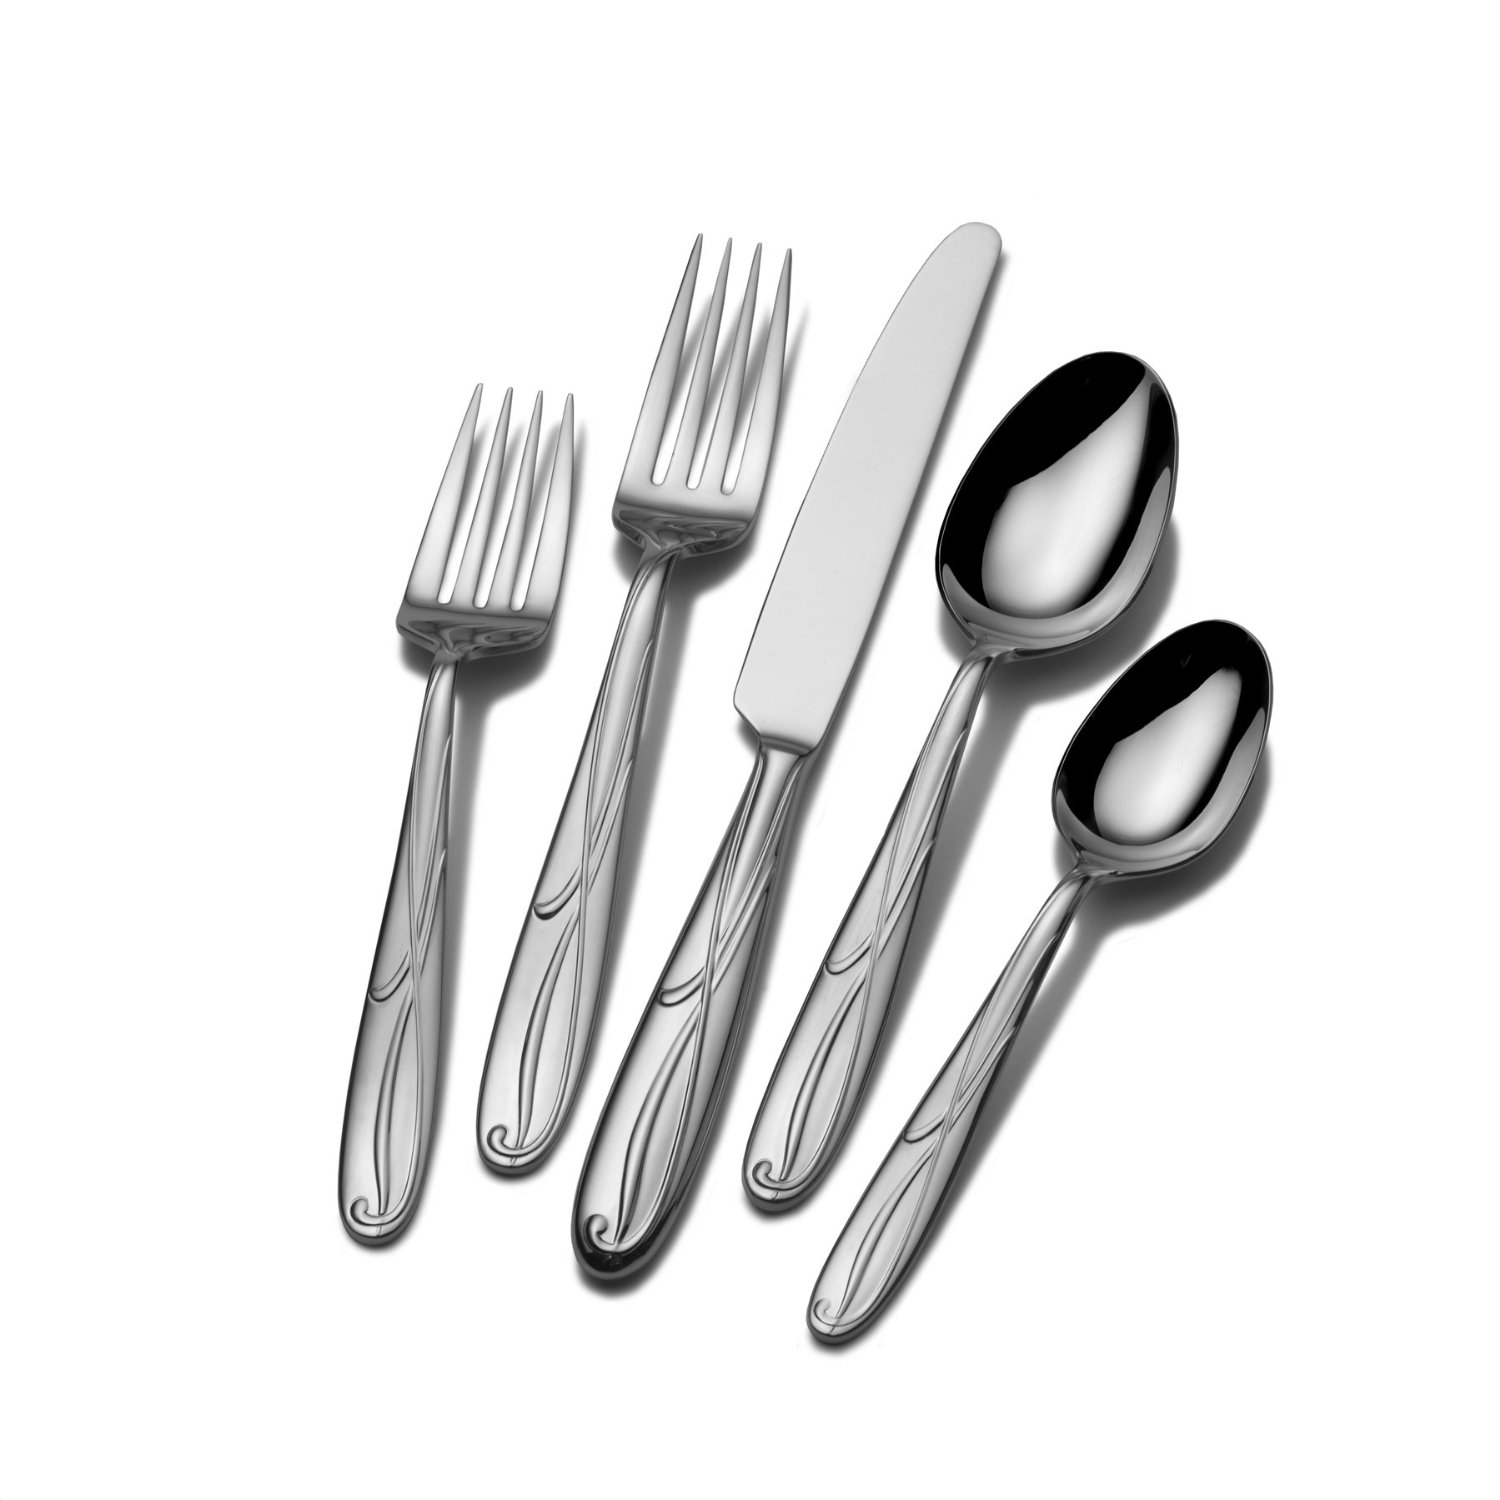 Elegant Flatware Sets Best Flatware Sets Bringing Elegance On Your Dining Table